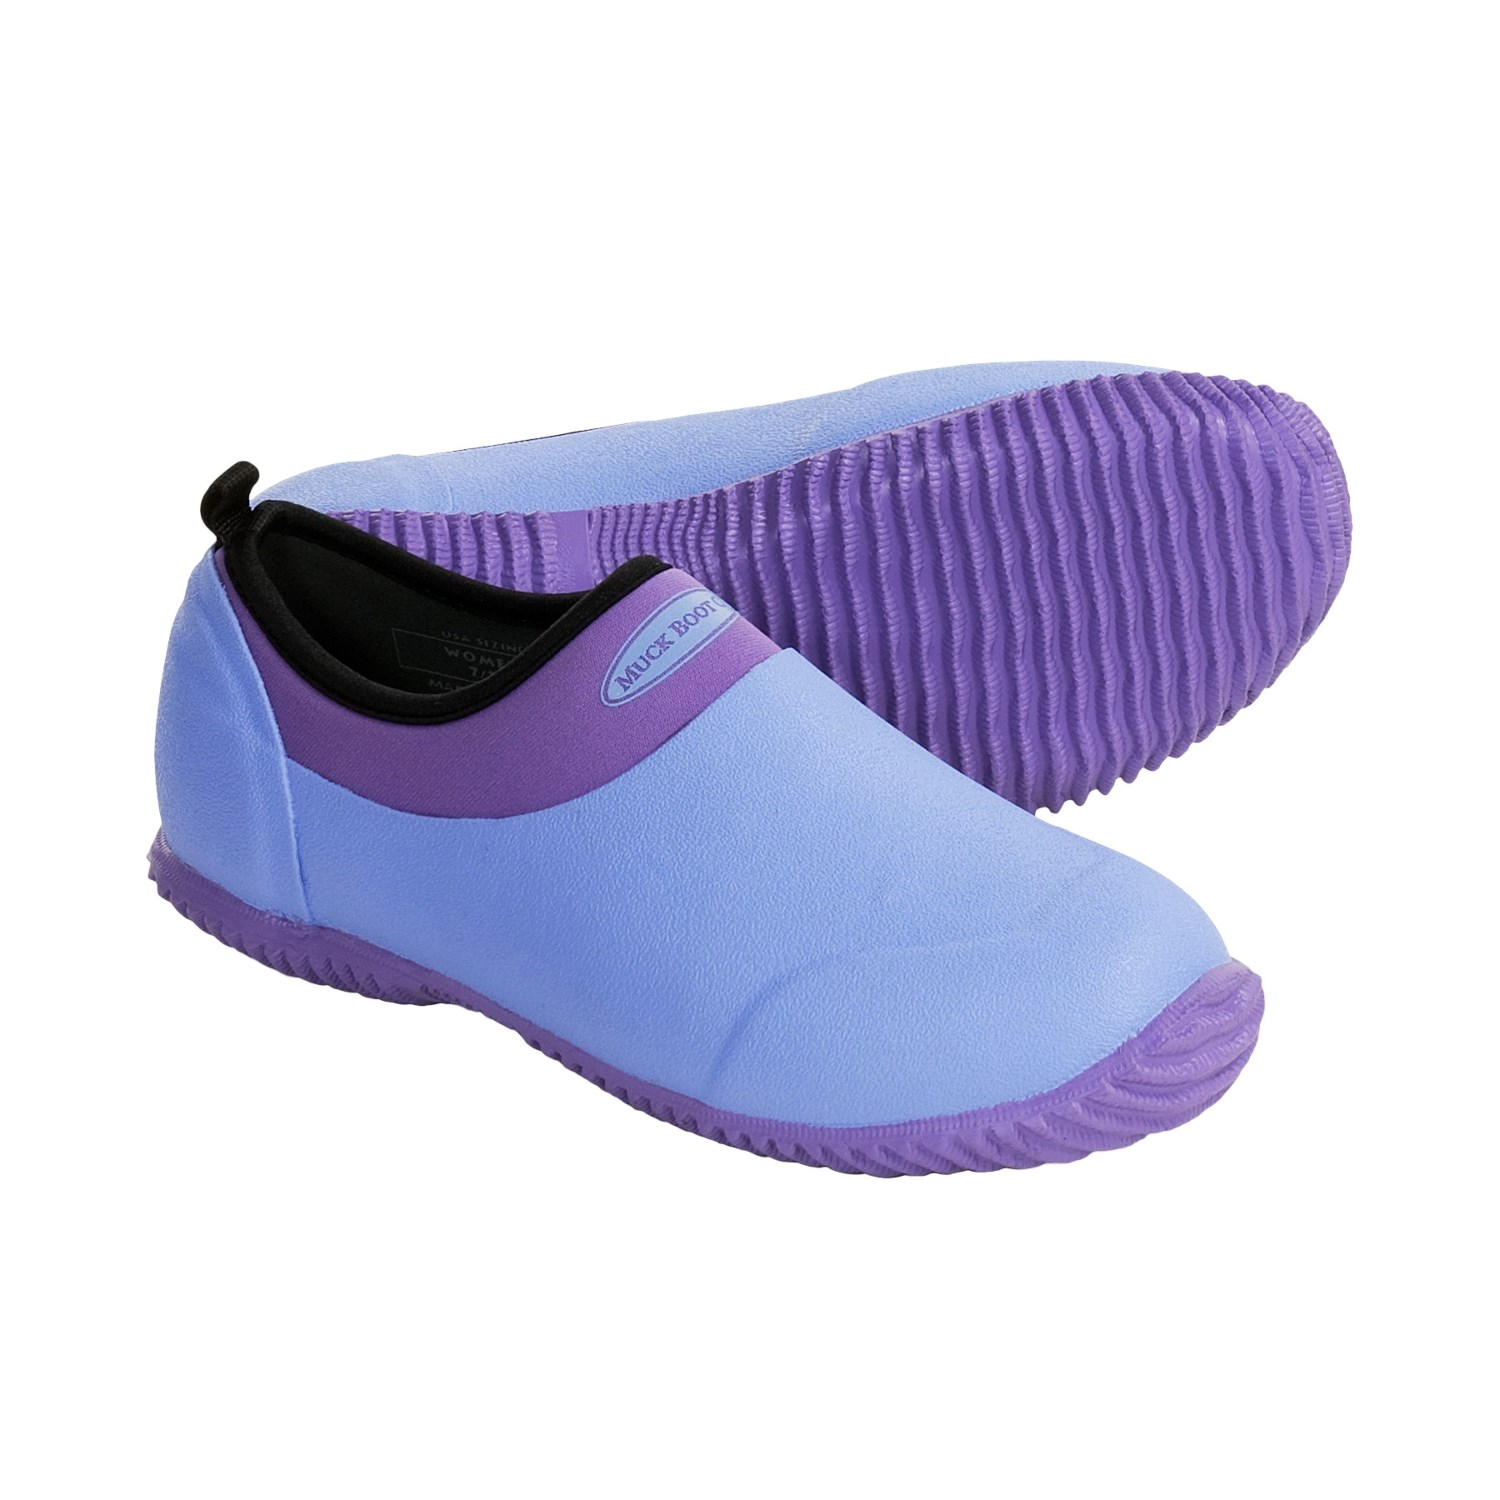 muck boot company daily muck shoes for women 3262f